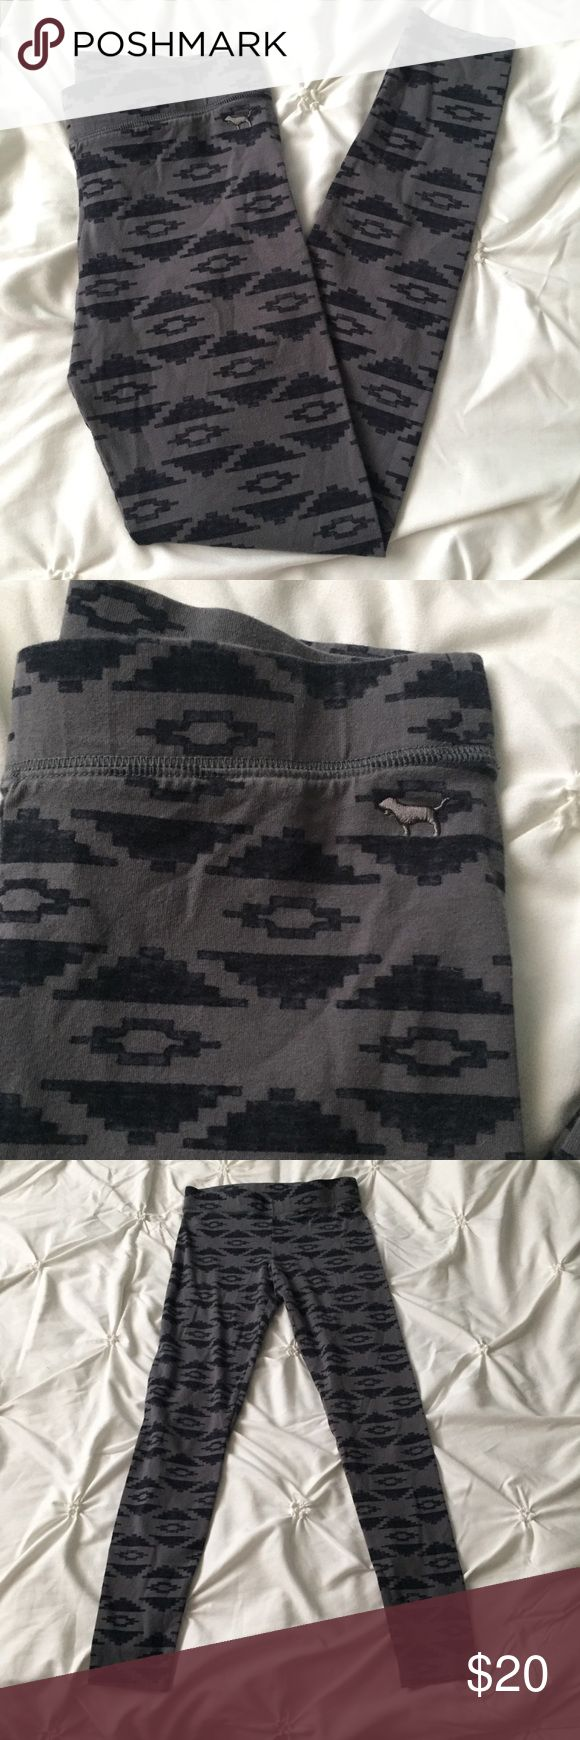 PINK Victoria's Secret Gray & Black Tribal Legging PINK Victoria's Secret Gray & Black Tribal Leggings Pants size XS - full length  ----- 🚭 All items are from a non-smoking home. 👆🏻Item is as described, feel free to ask questions. 📦 I am a fast shipper with excellent ratings. 👗I love bundles & bundle discounts. Feel free to make an offer! 😍 Like this item? Check out the rest of my closet! 💖 Thanks for looking! PINK Victoria's Secret Pants Leggings